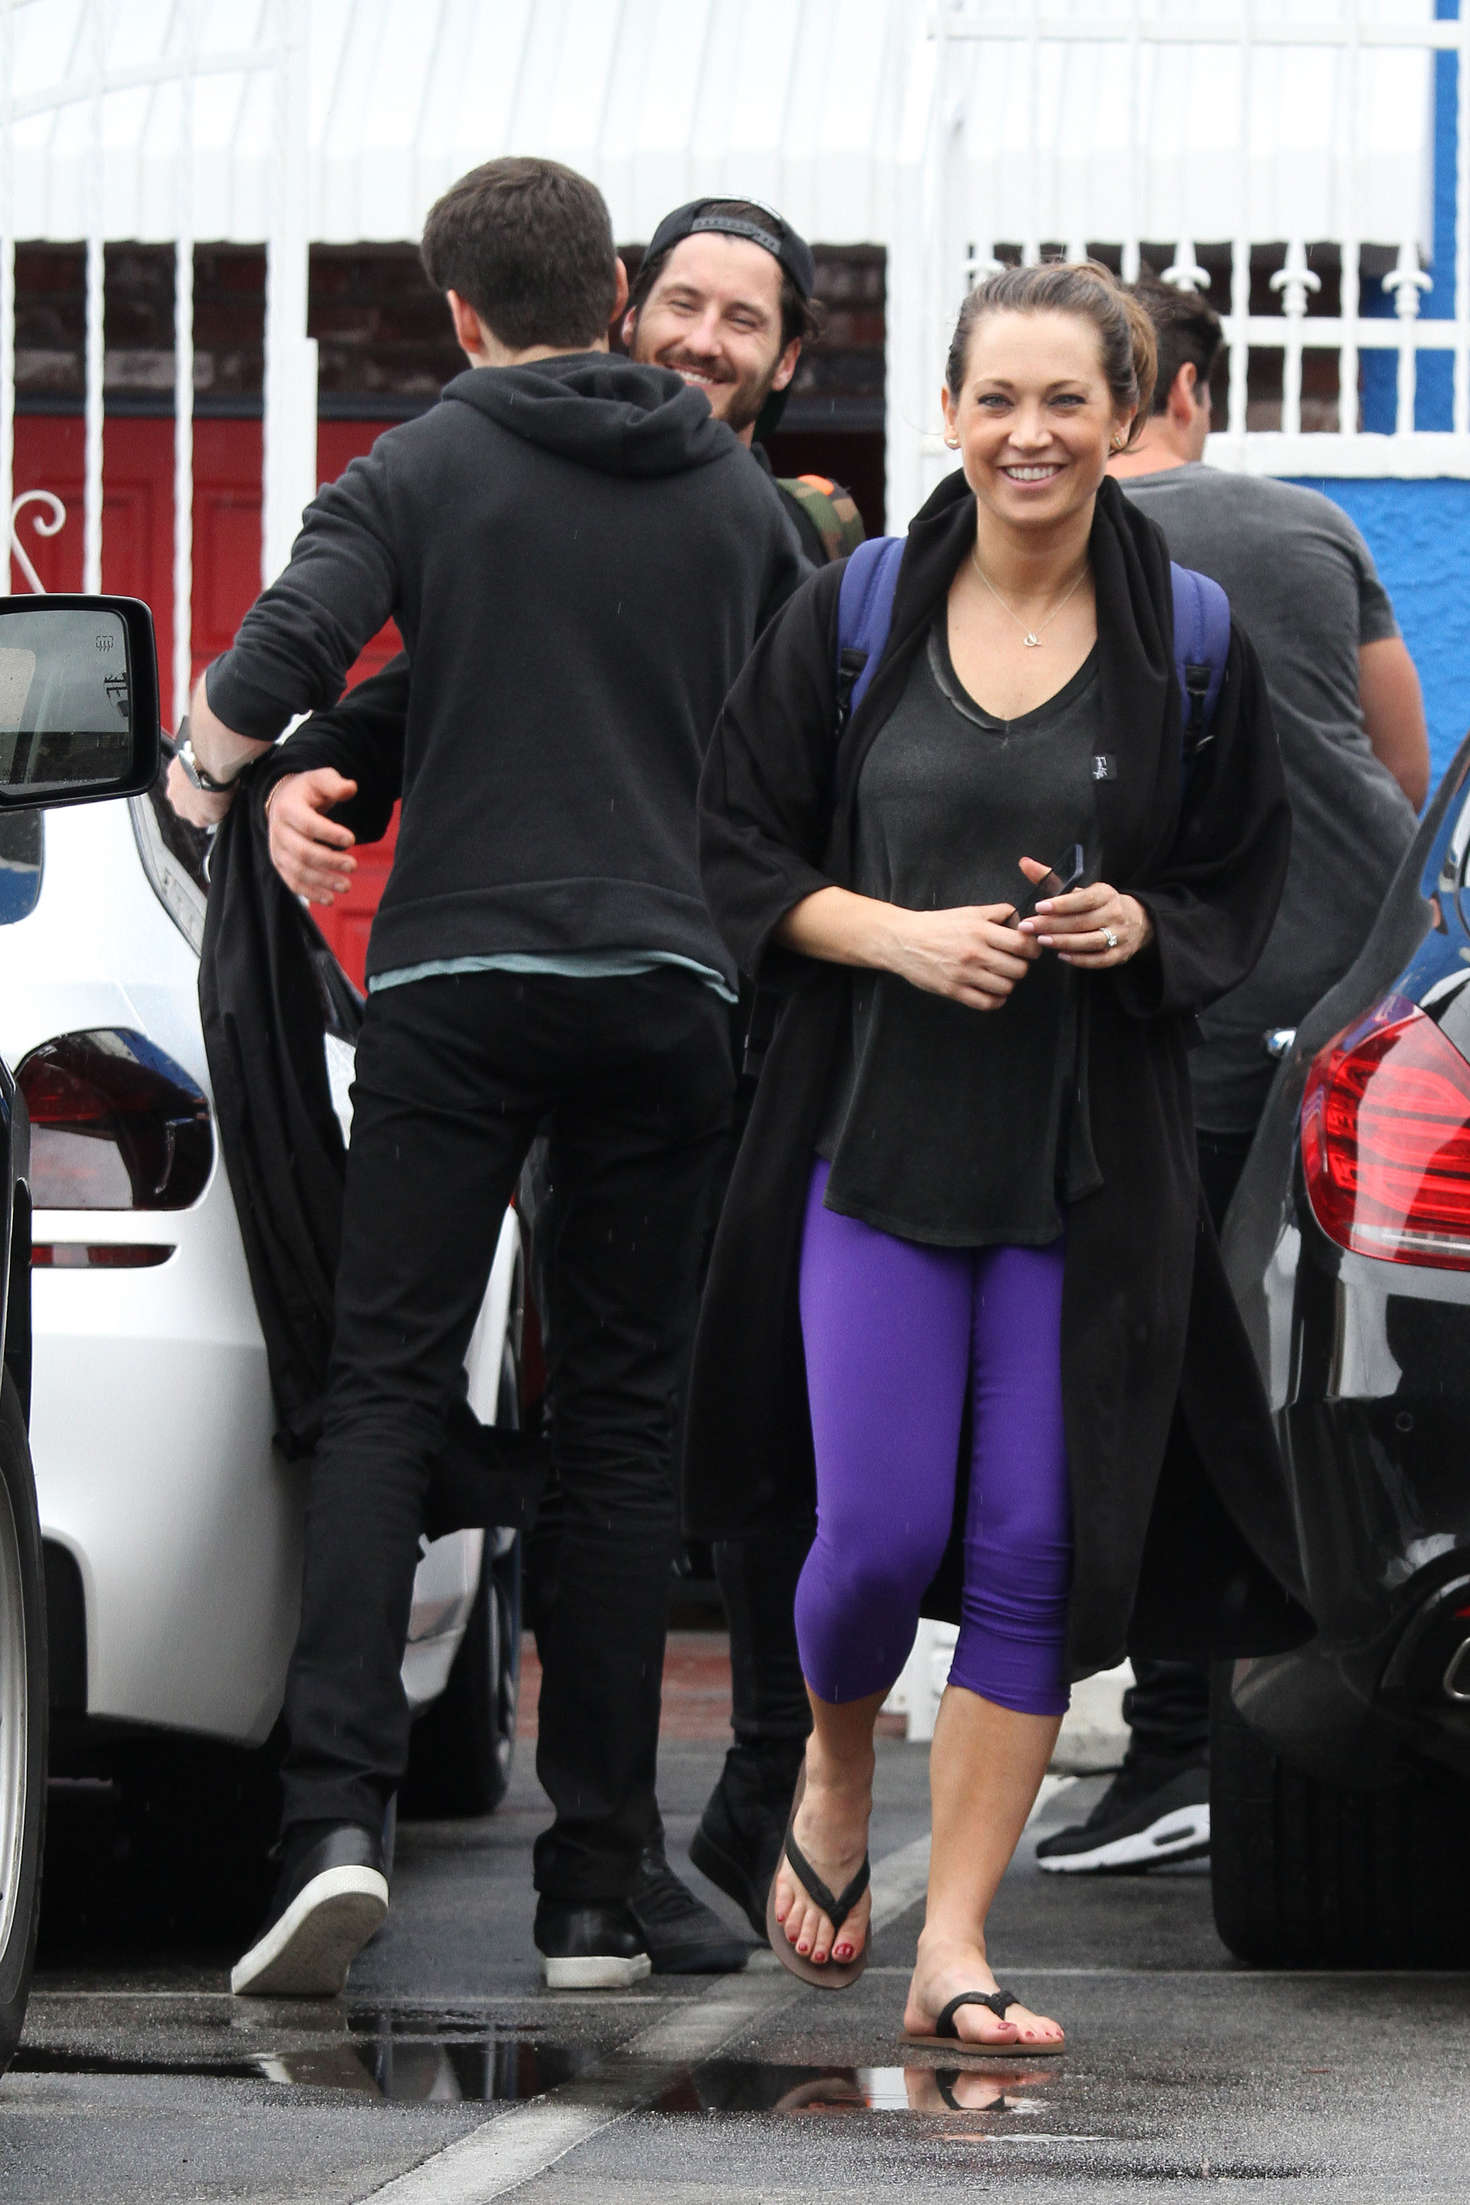 Ginger Zee in Tights at DWTS Practice in Hollywood